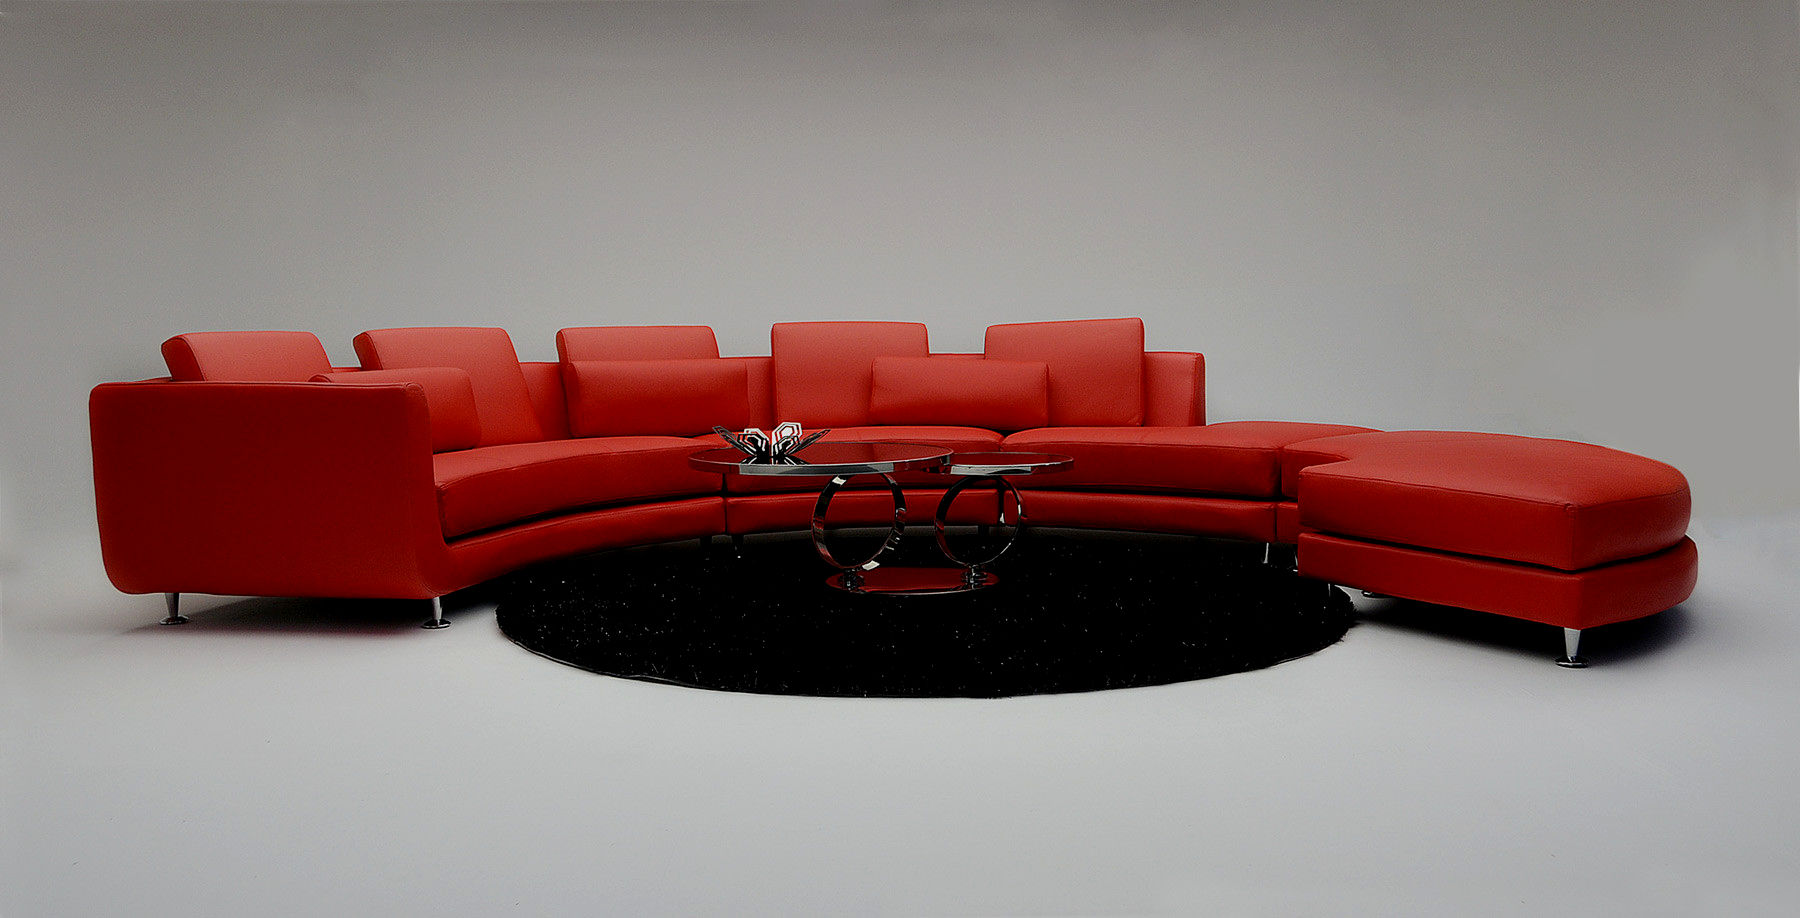 unique leather modular sofa gallery-Finest Leather Modular sofa Collection